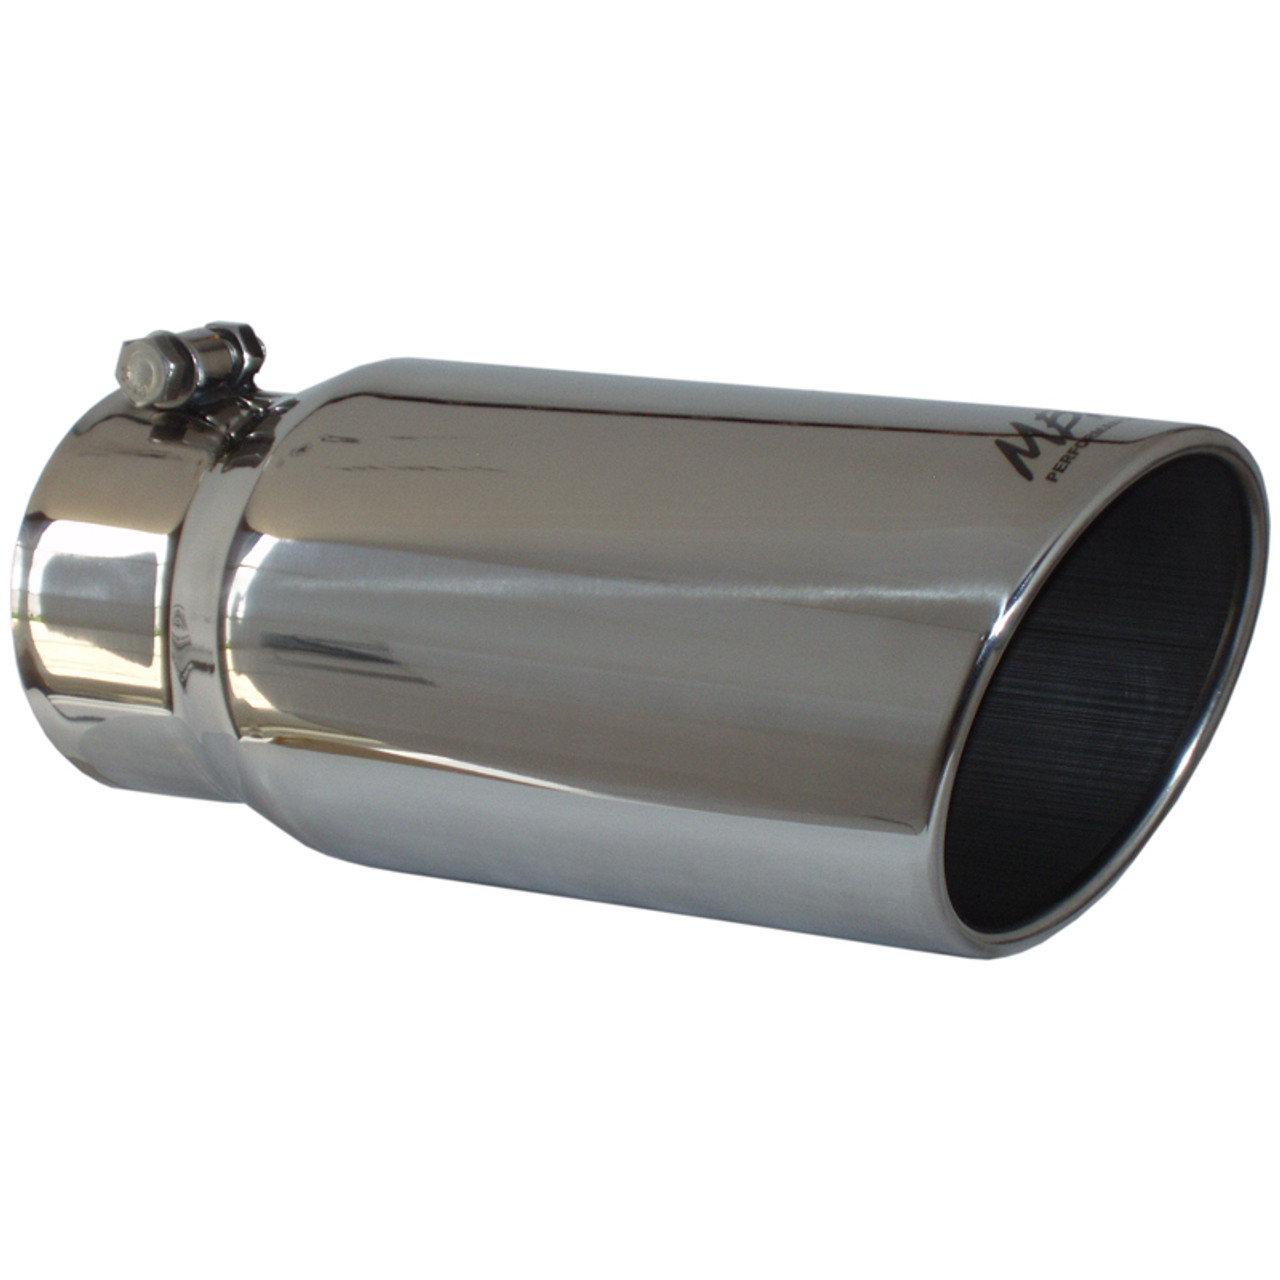 MBRP T5081 4 O.D Turn Down Exhaust Tip T304 MBRP Exhaust